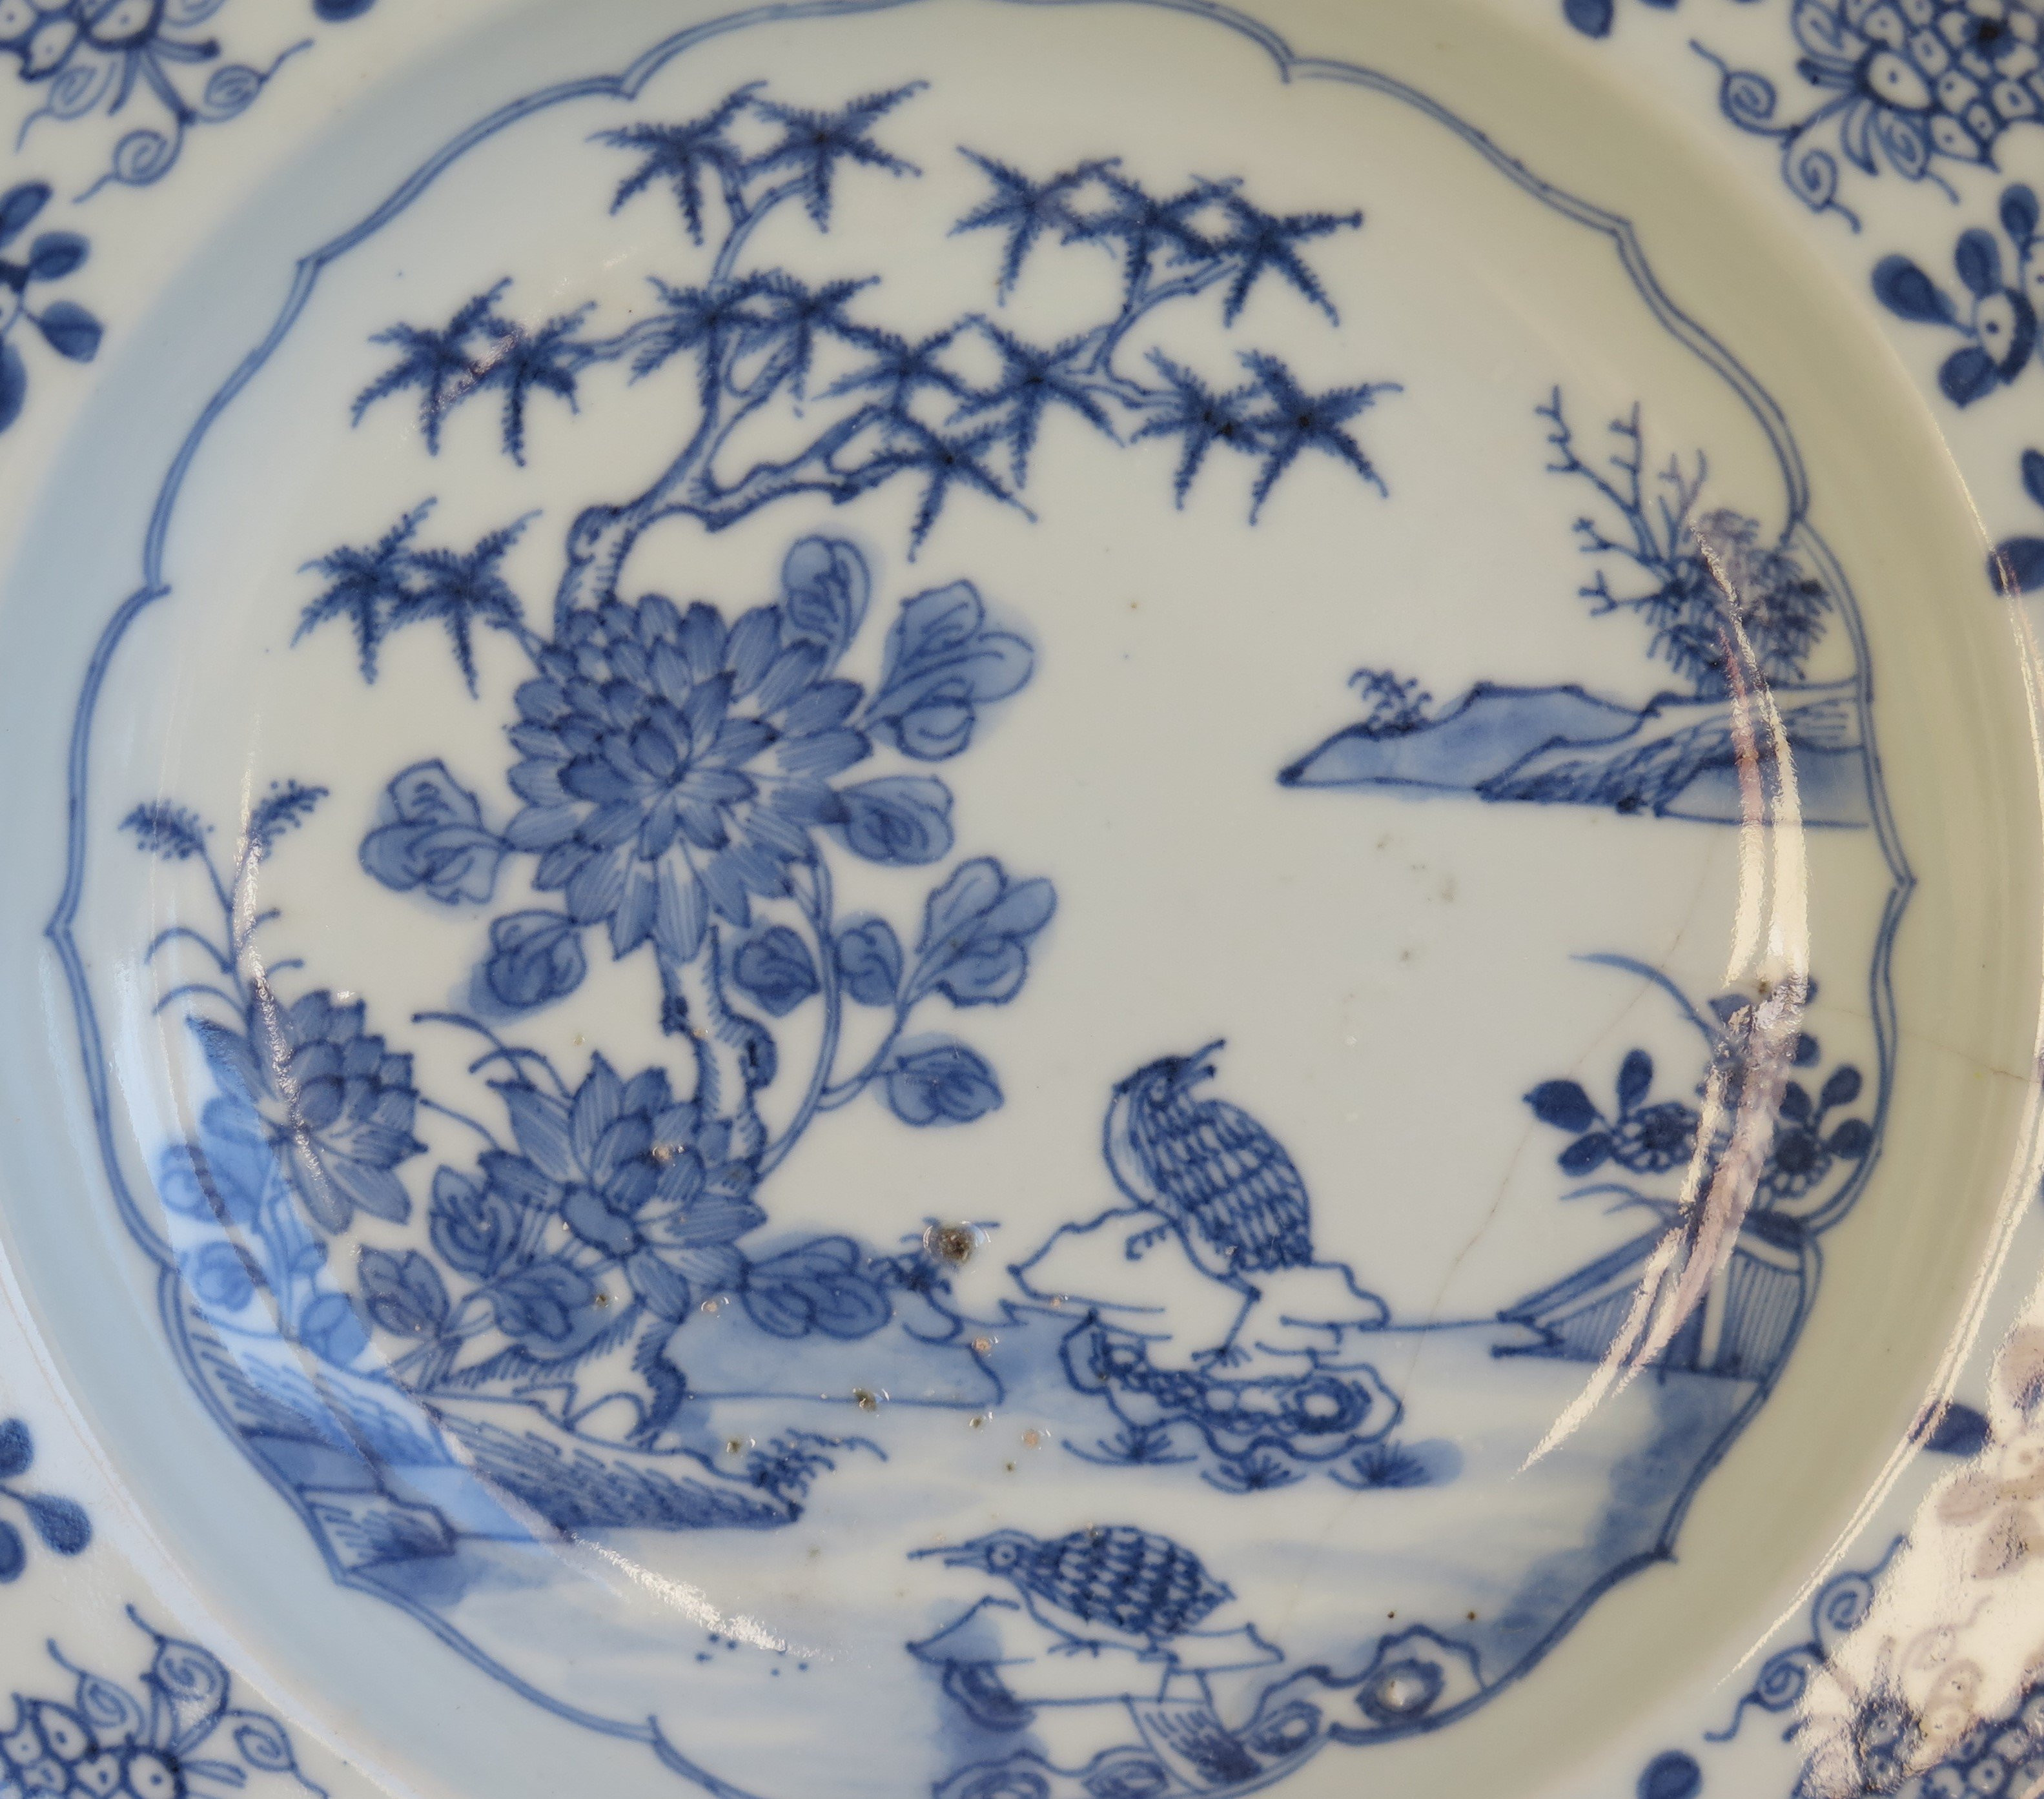 blue and white asian vase of chinese porcelain plate or bowl blue and white woodland birds pertaining to chinese porcelain plate or bowl blue and white woodland birds circa 1770 at 1stdibs